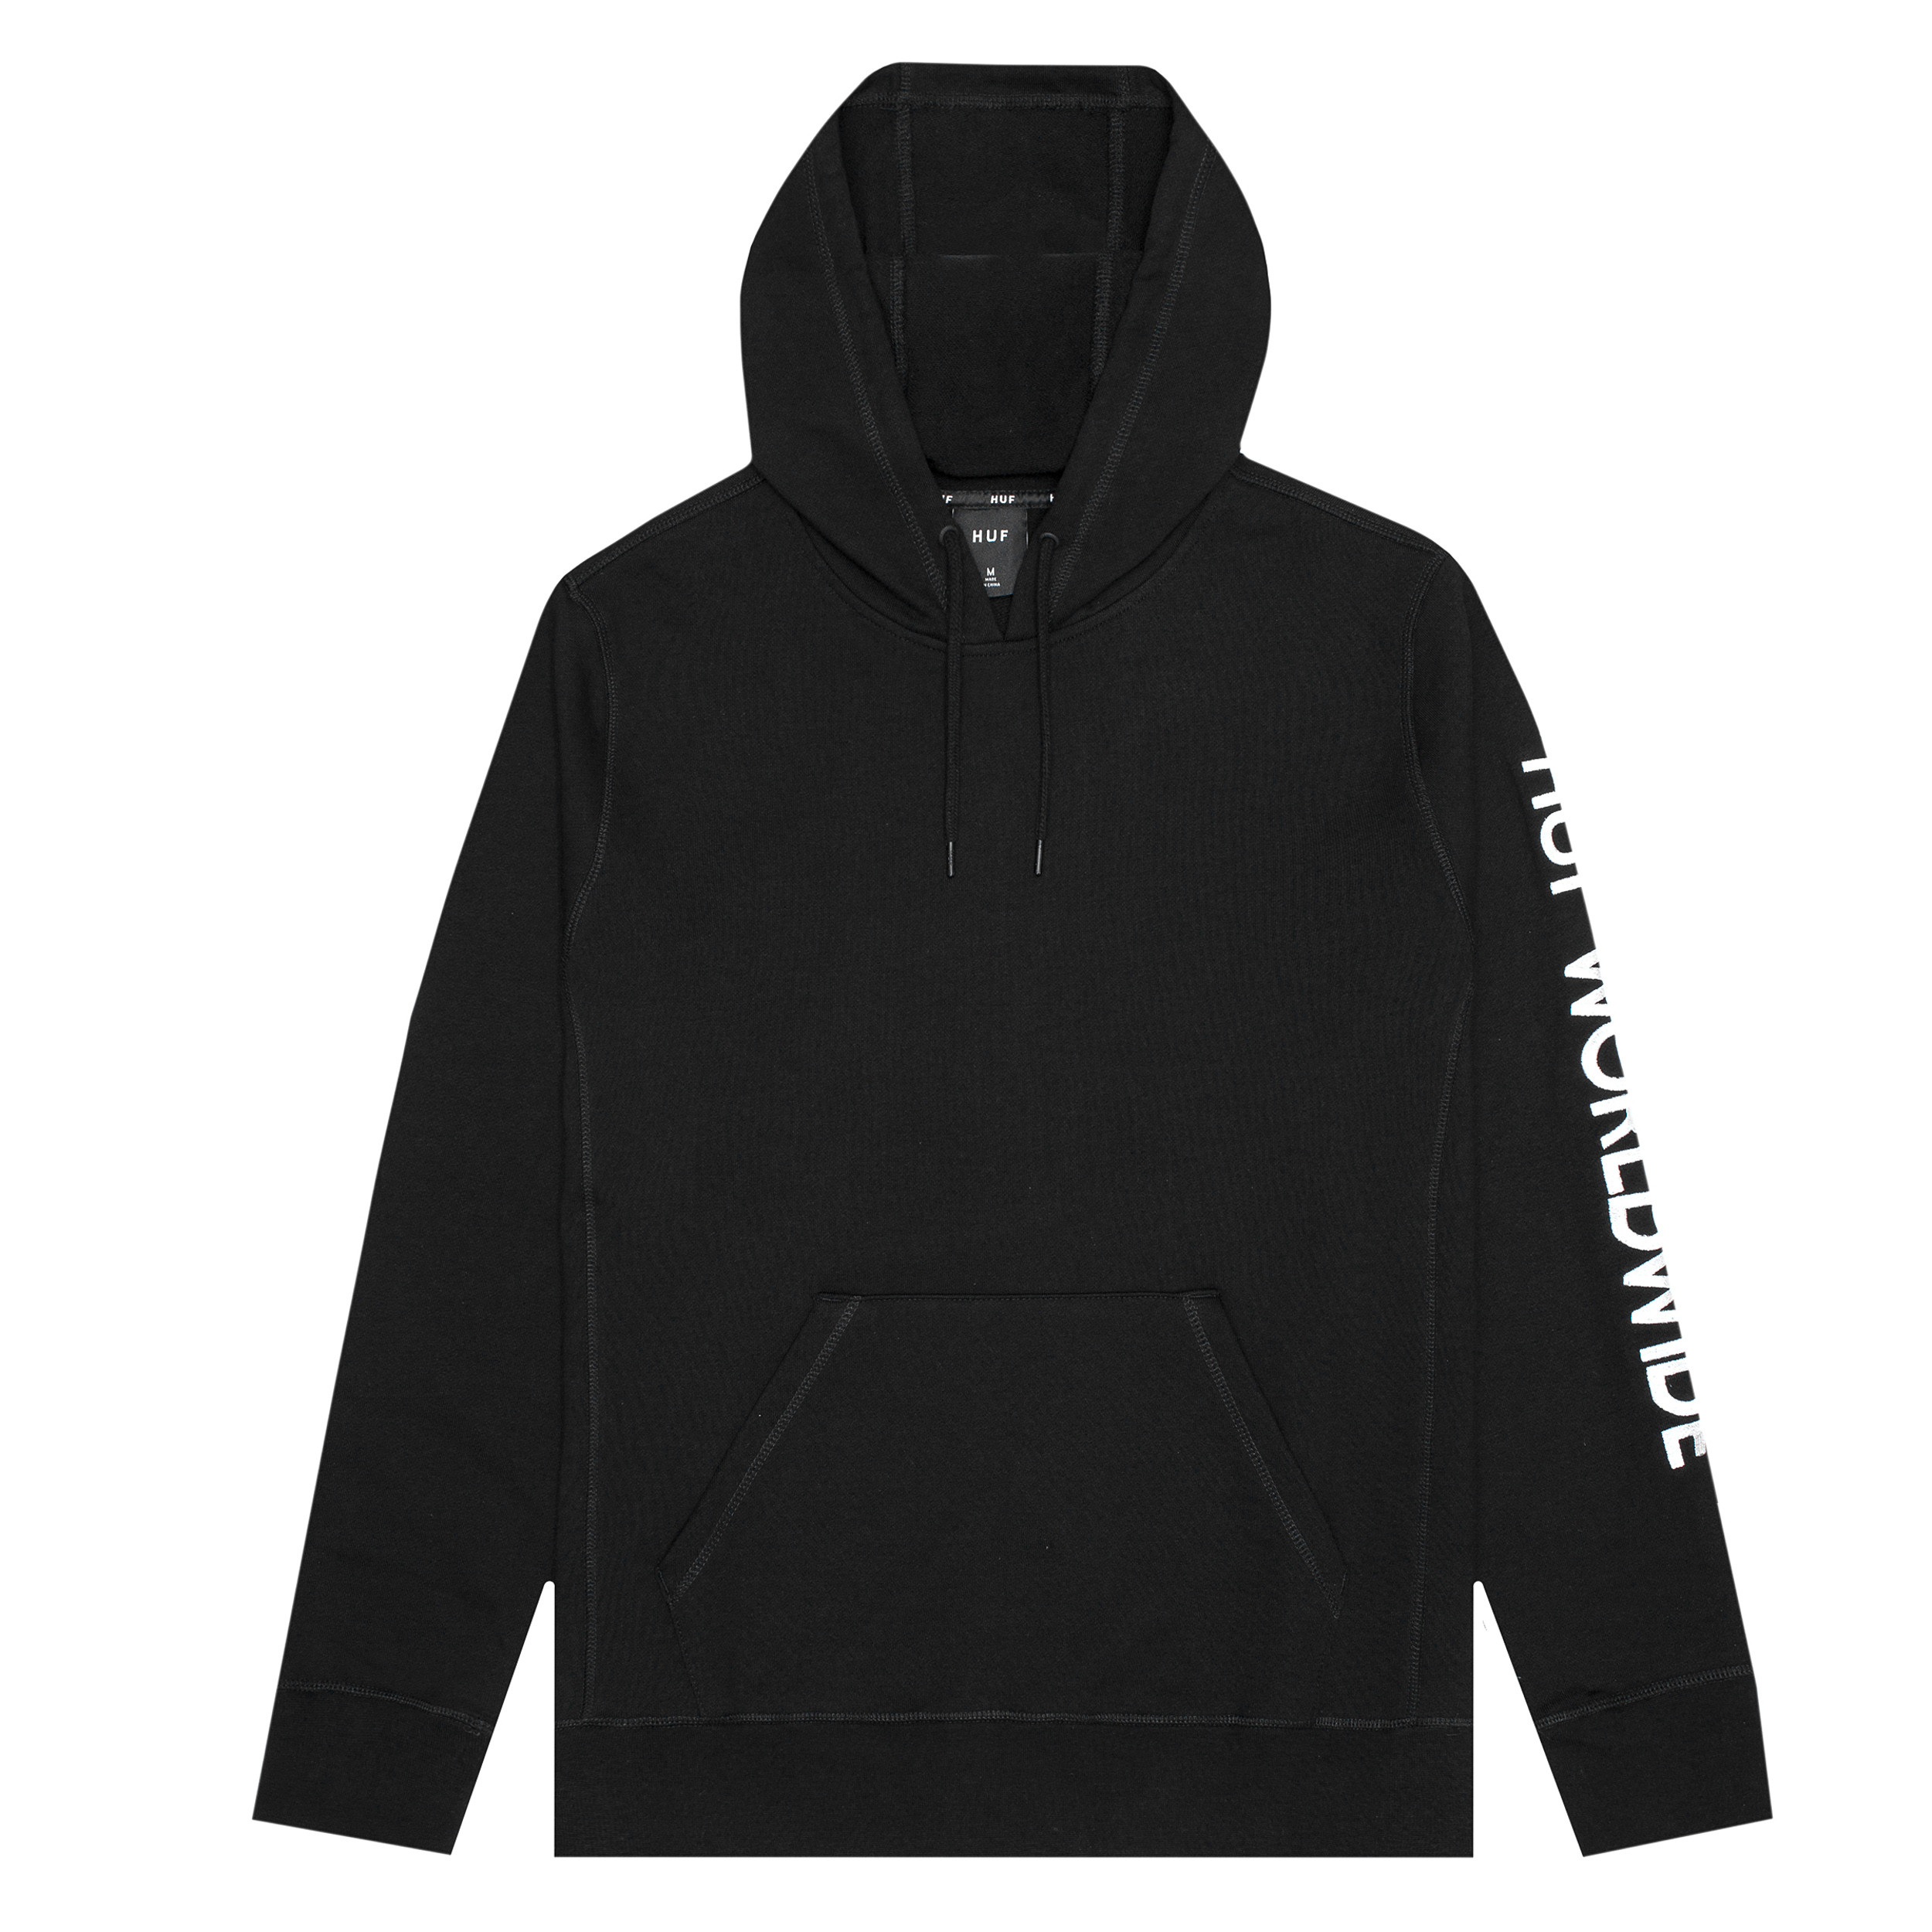 HUF Mission Hooded Sweatshirt Black